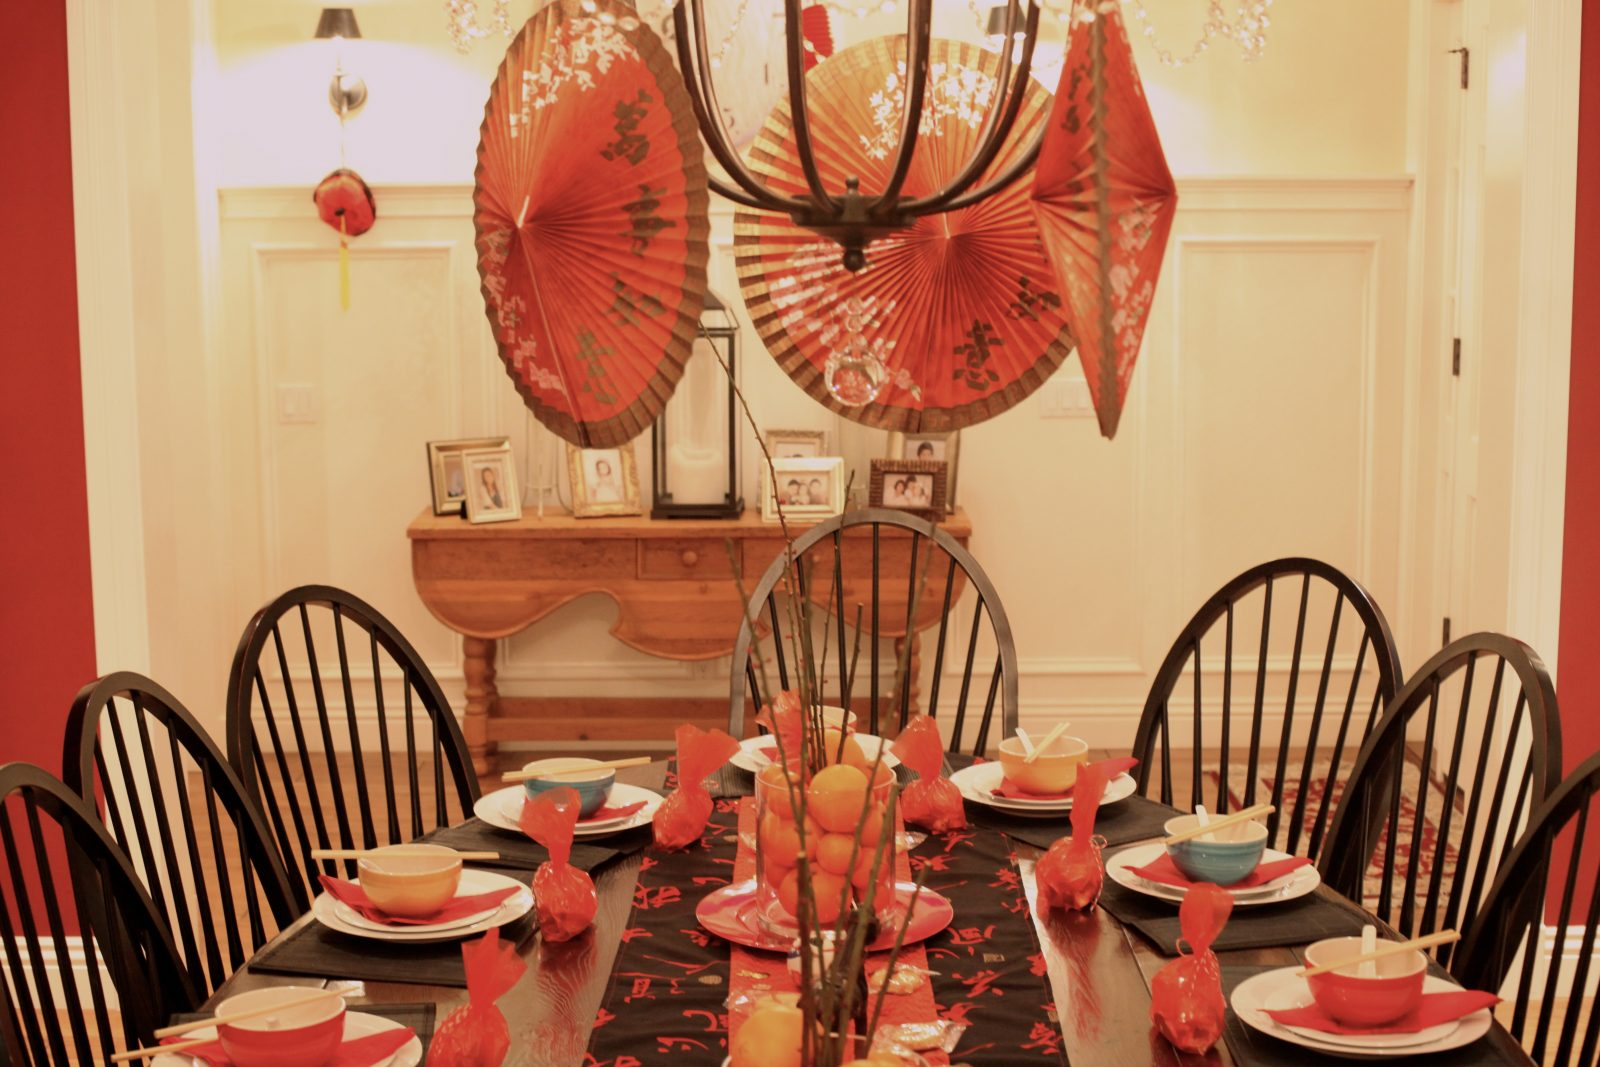 Chinese Dinner Party Ideas Part - 41: IMG_9275